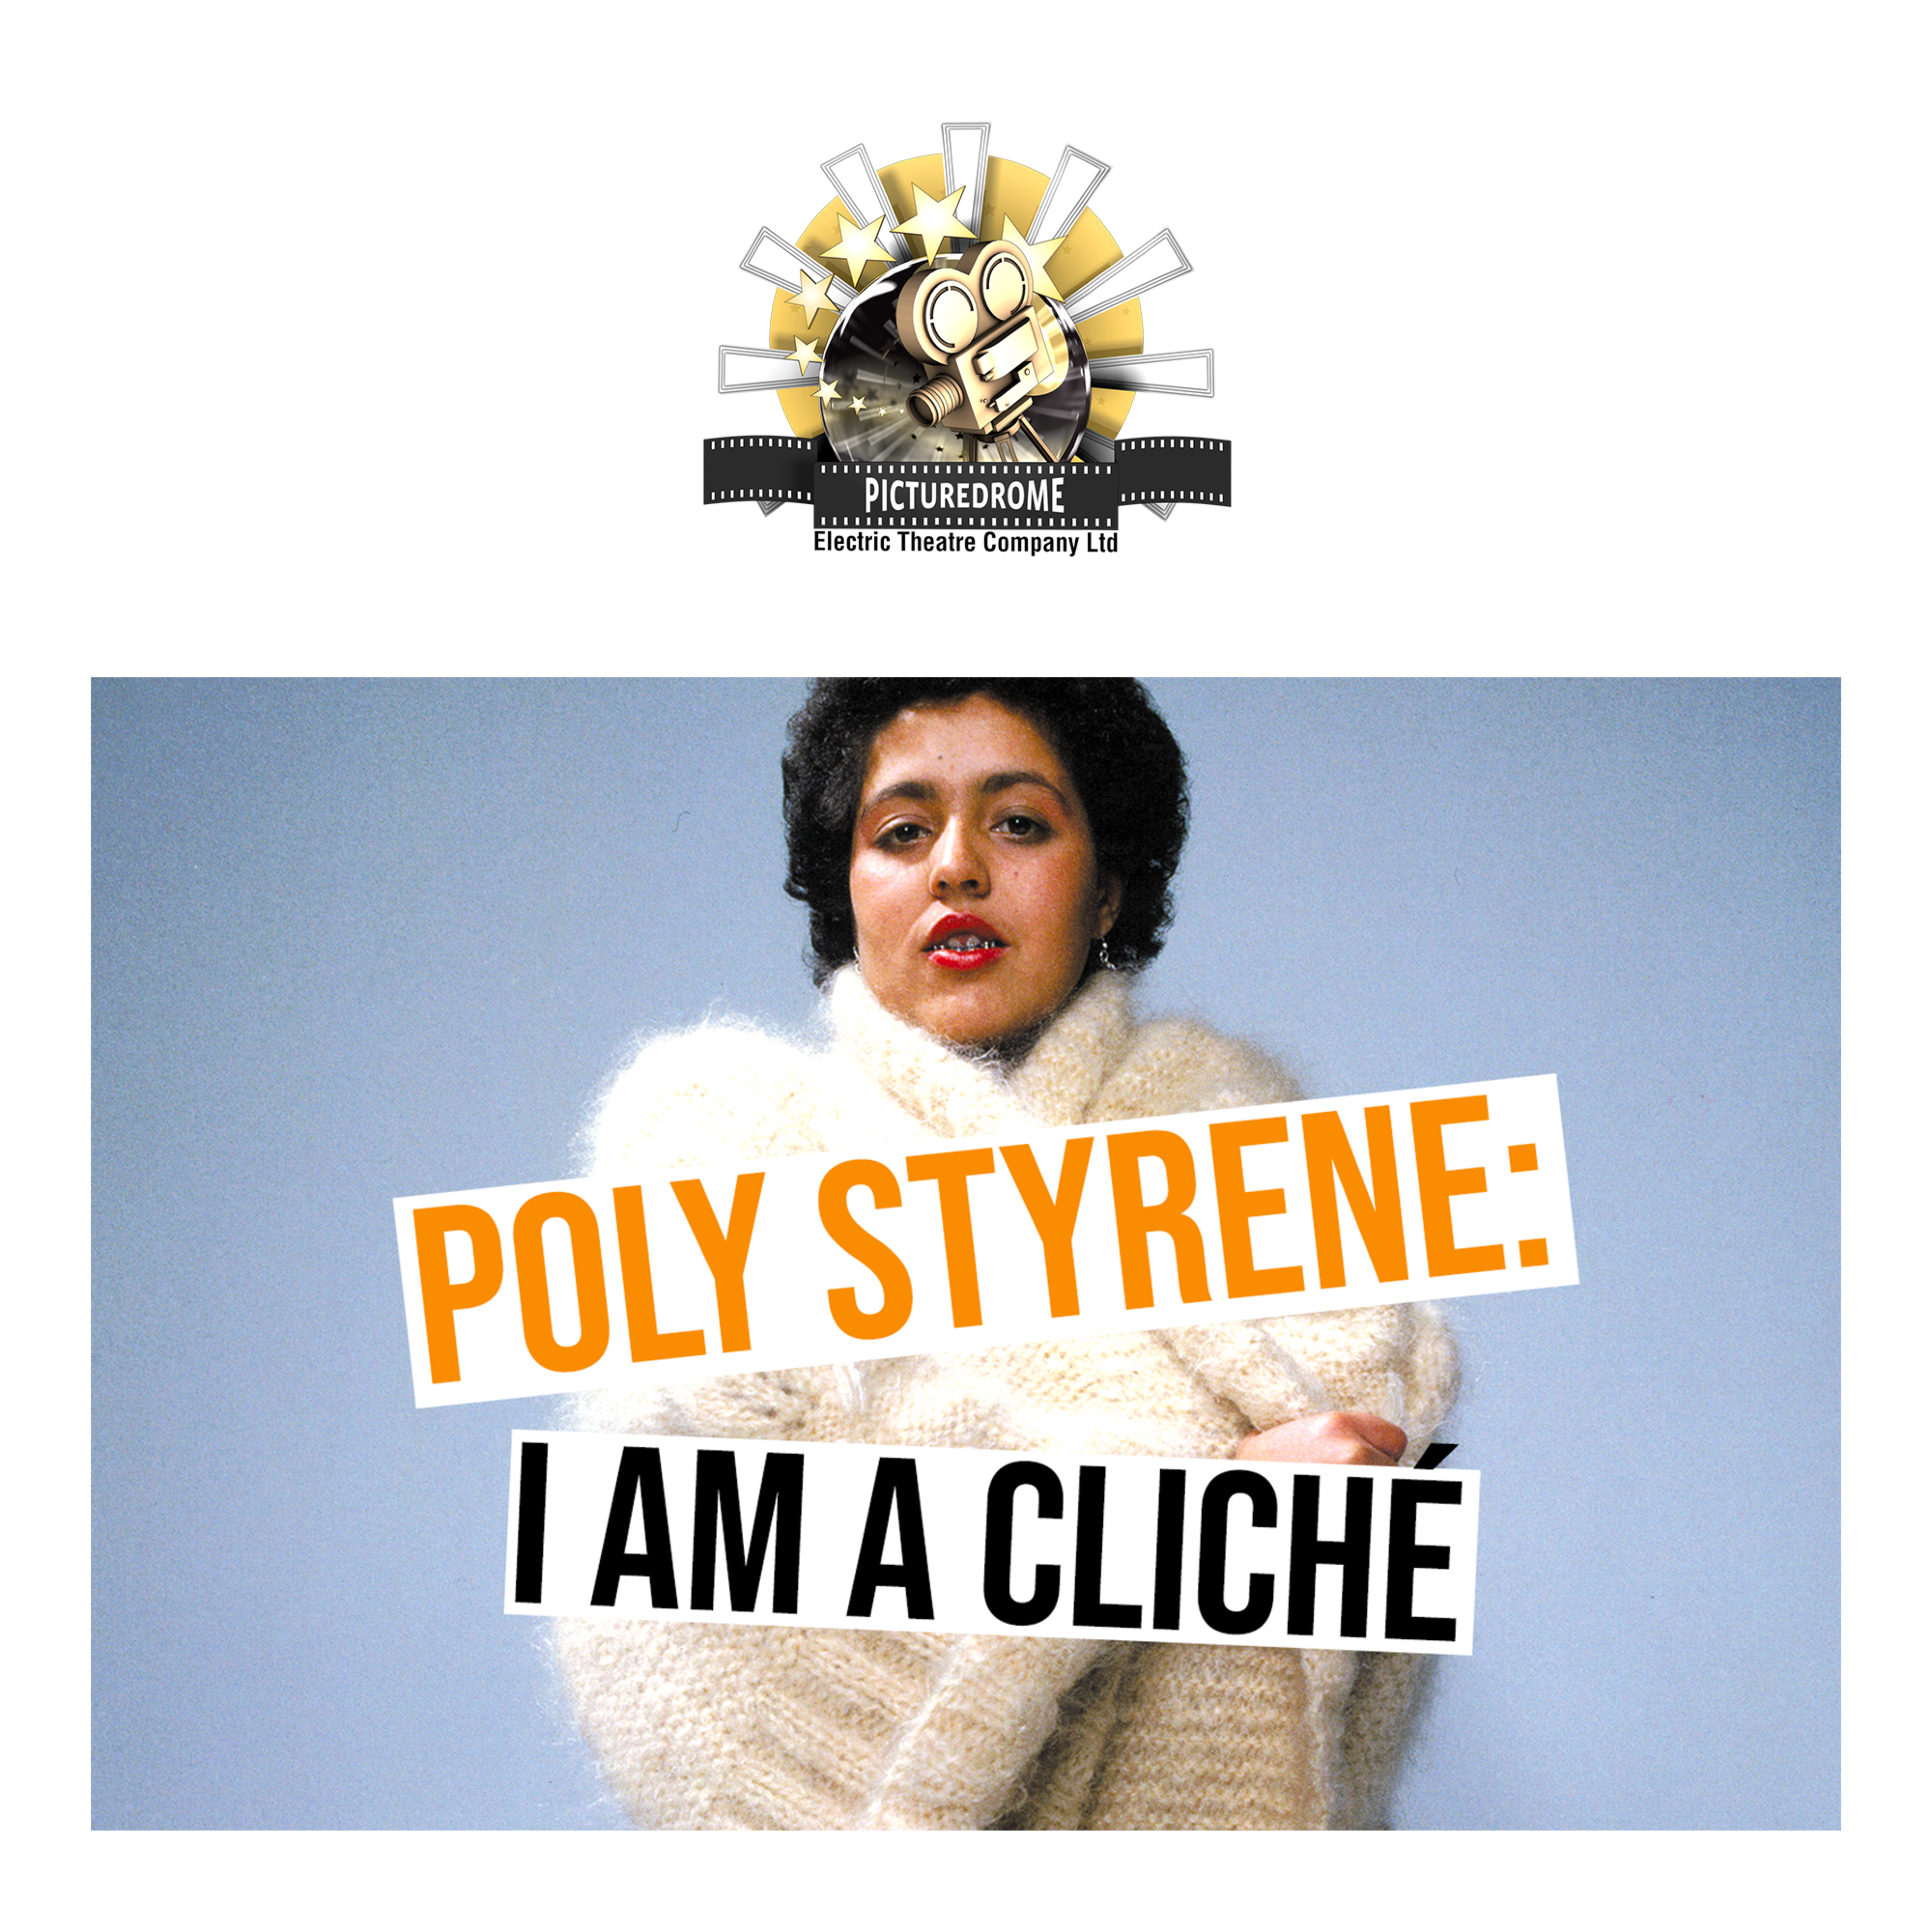 Poly Styrene: I Am a Cliché at Picturedrome